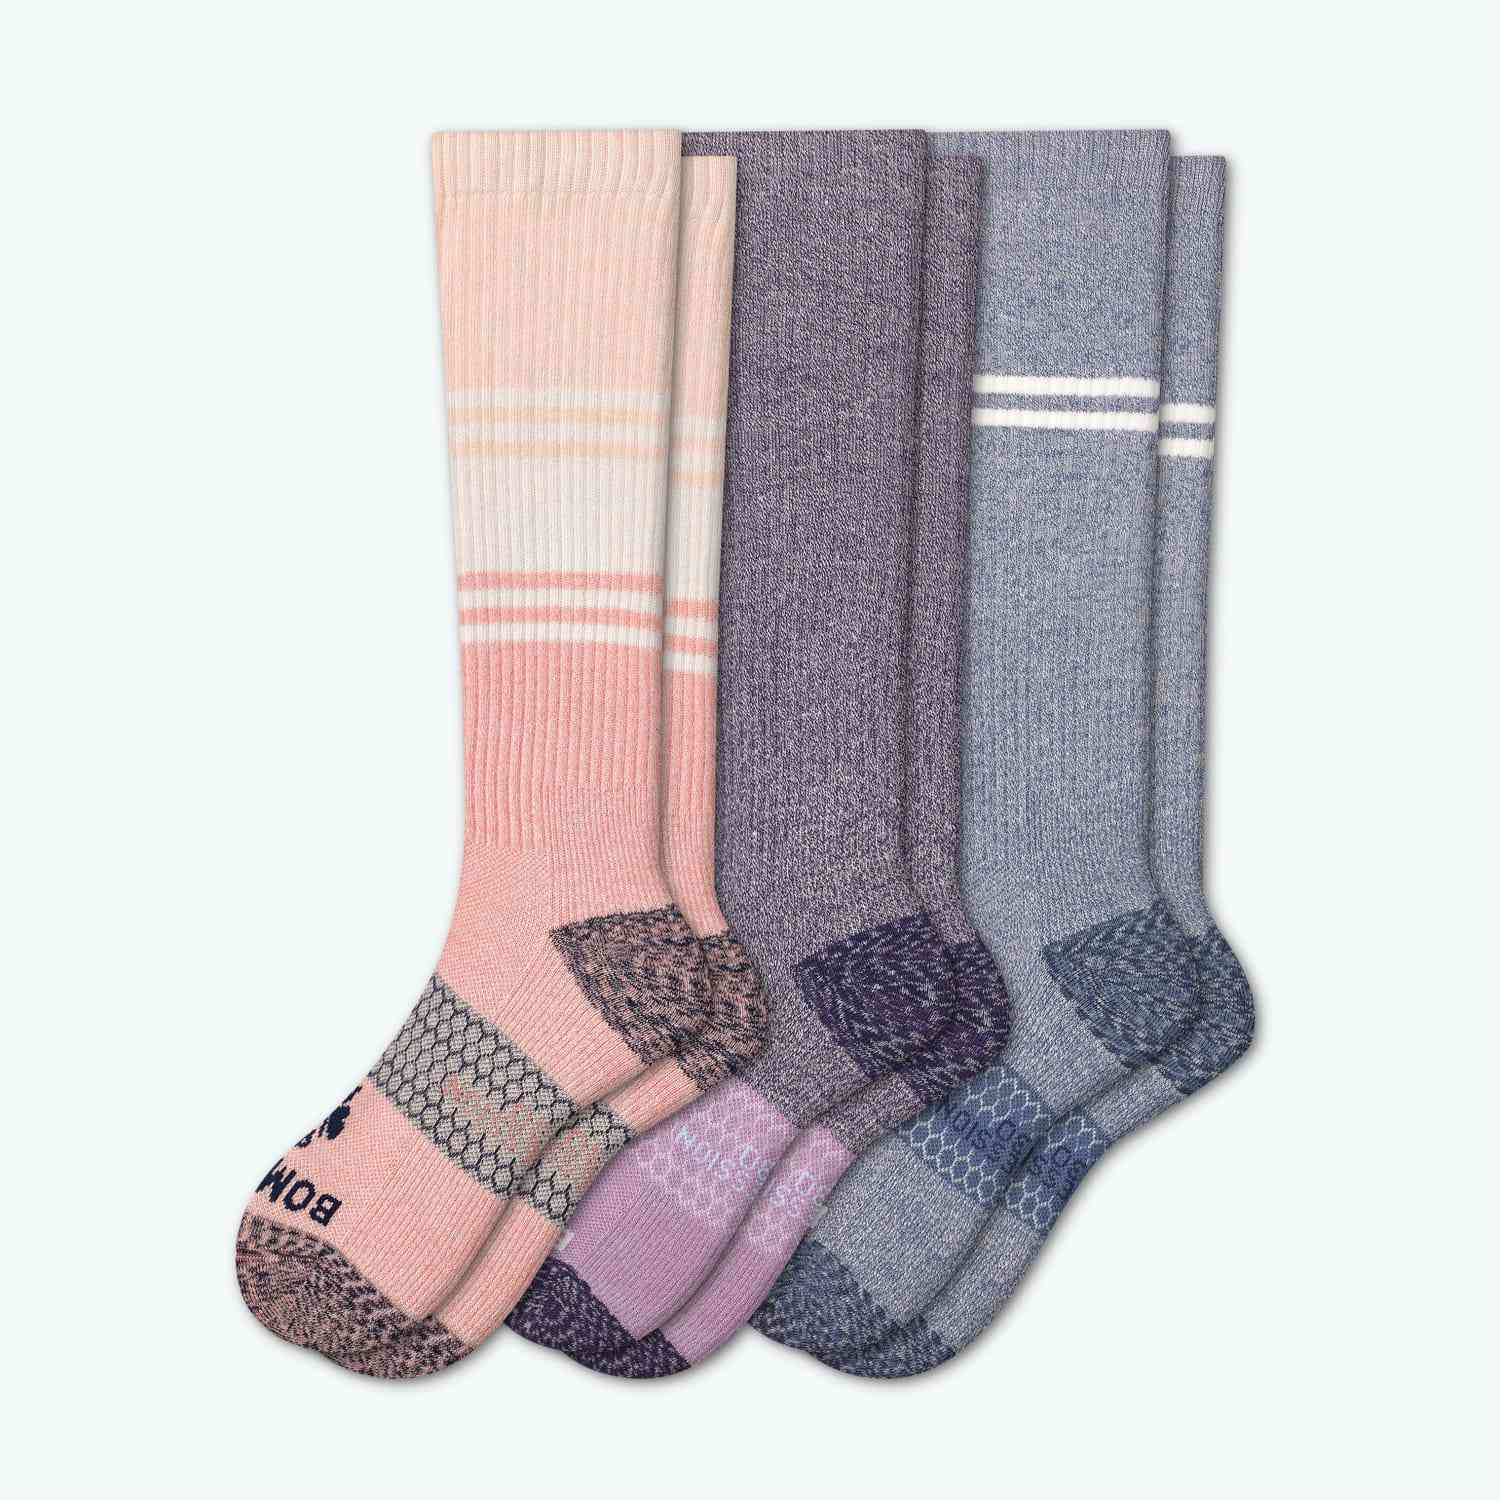 Bombas Women's Strong Compression Sock 3- Pack